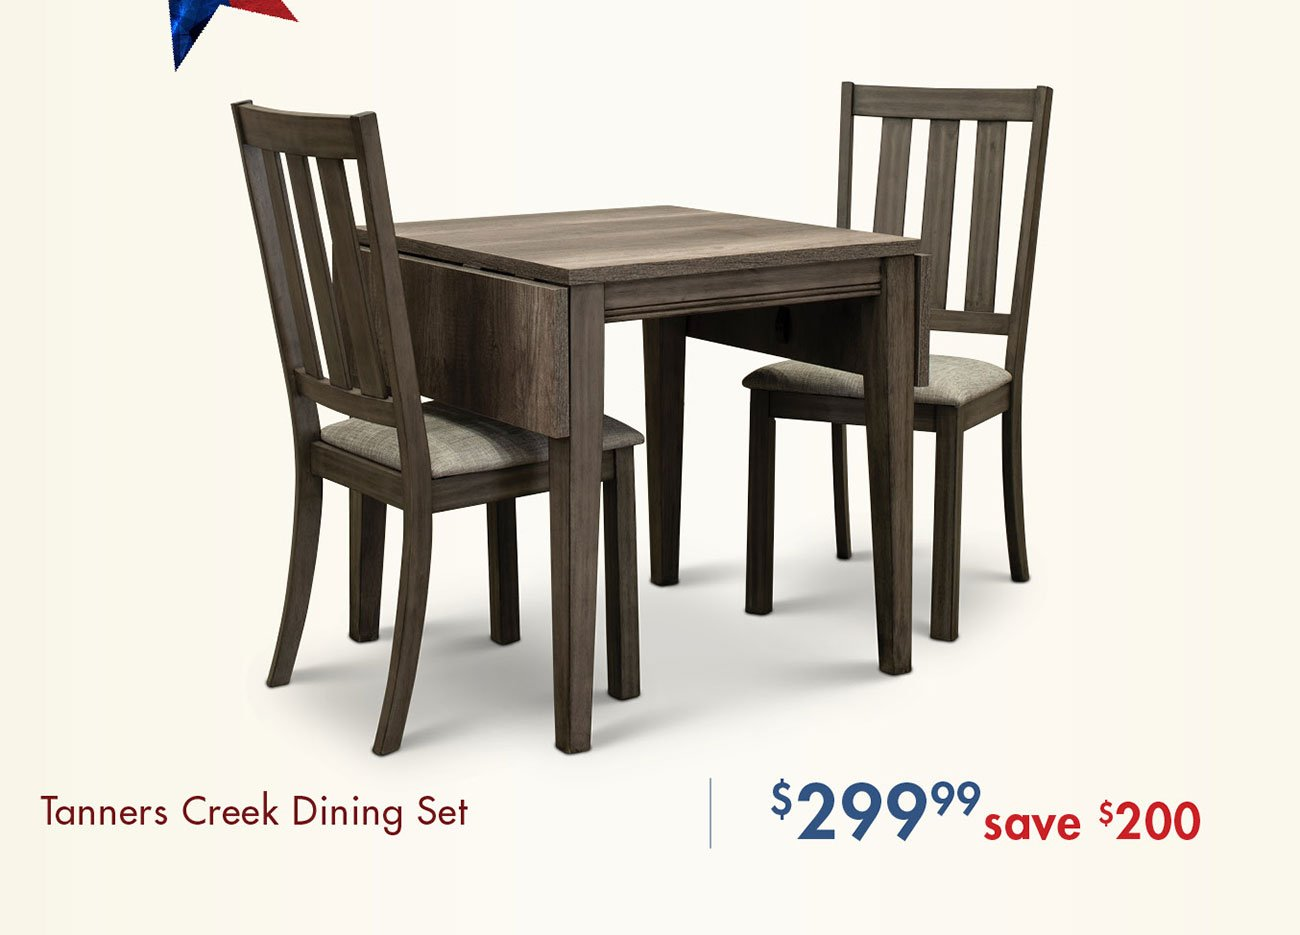 Tanners-creek-dining-set